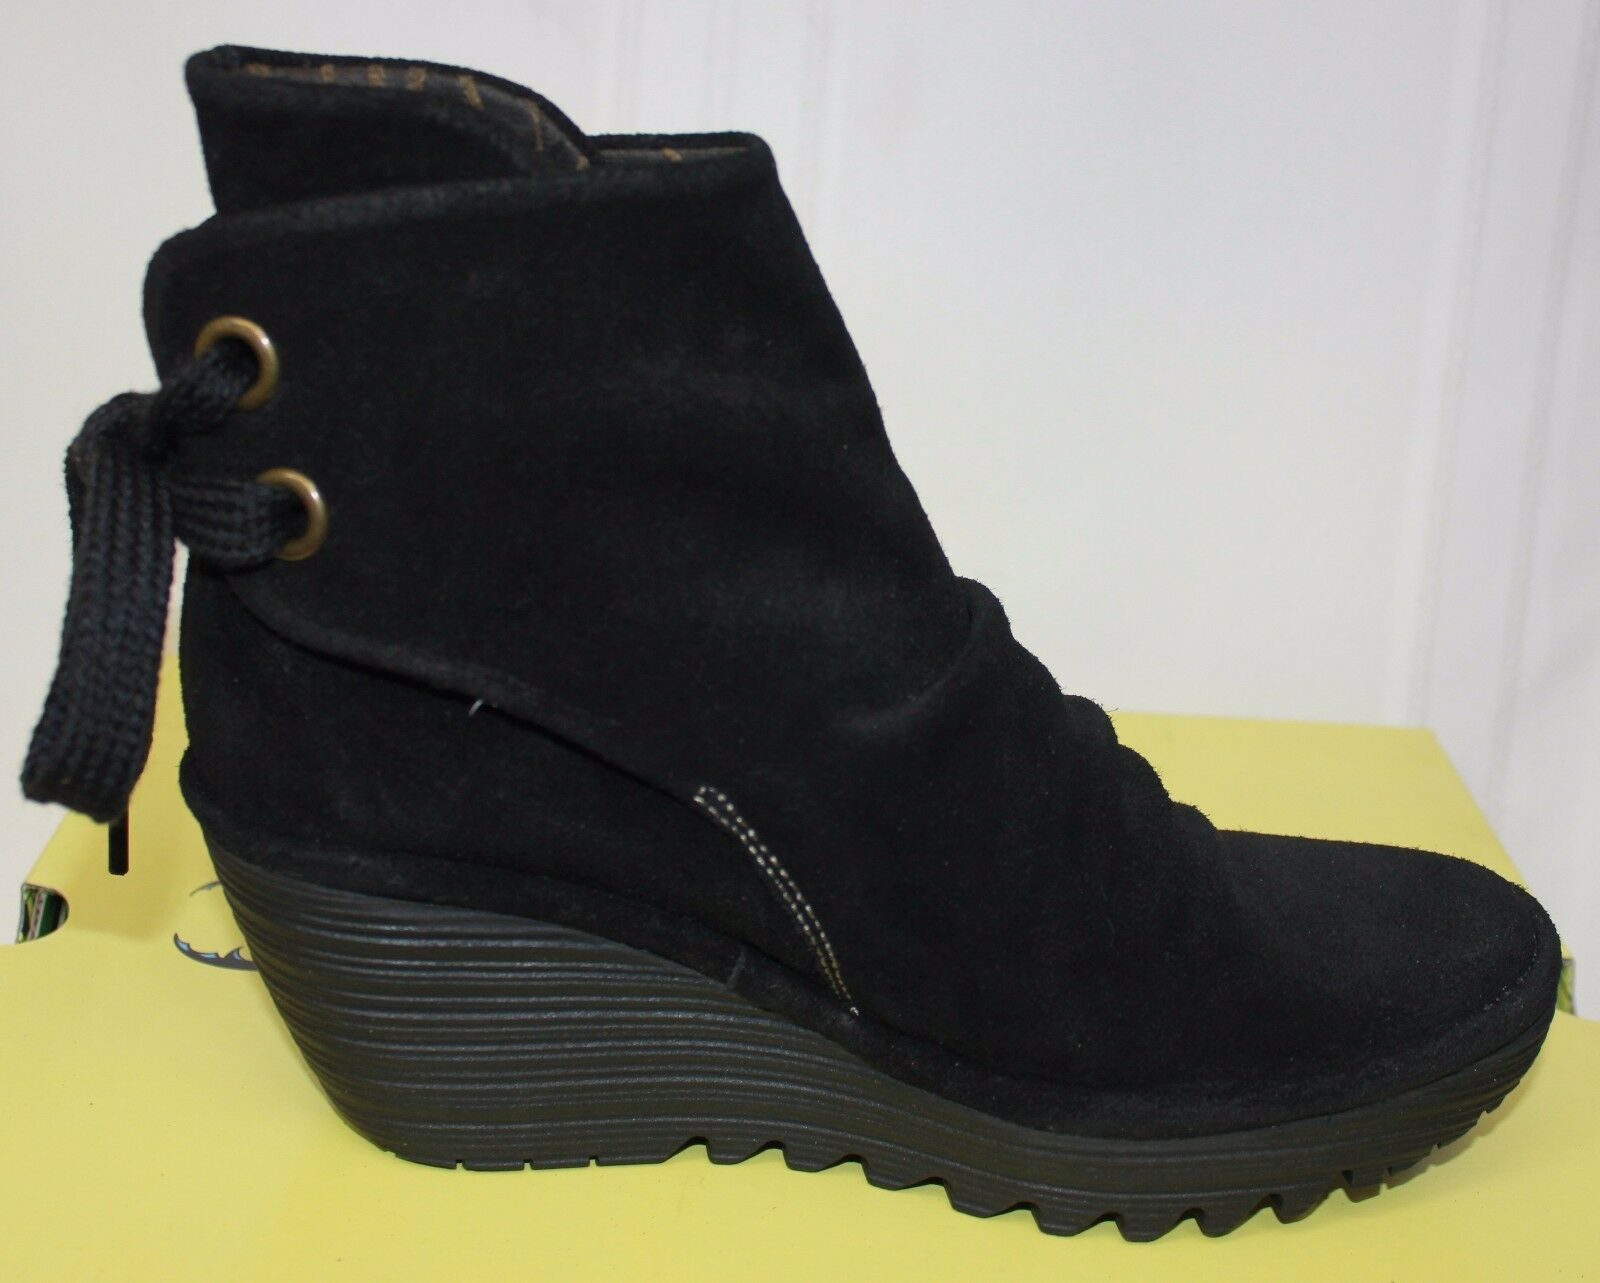 FLY LONDON Yama tie back booties Black Black Black Oil suede Boots New With Box 1a5642